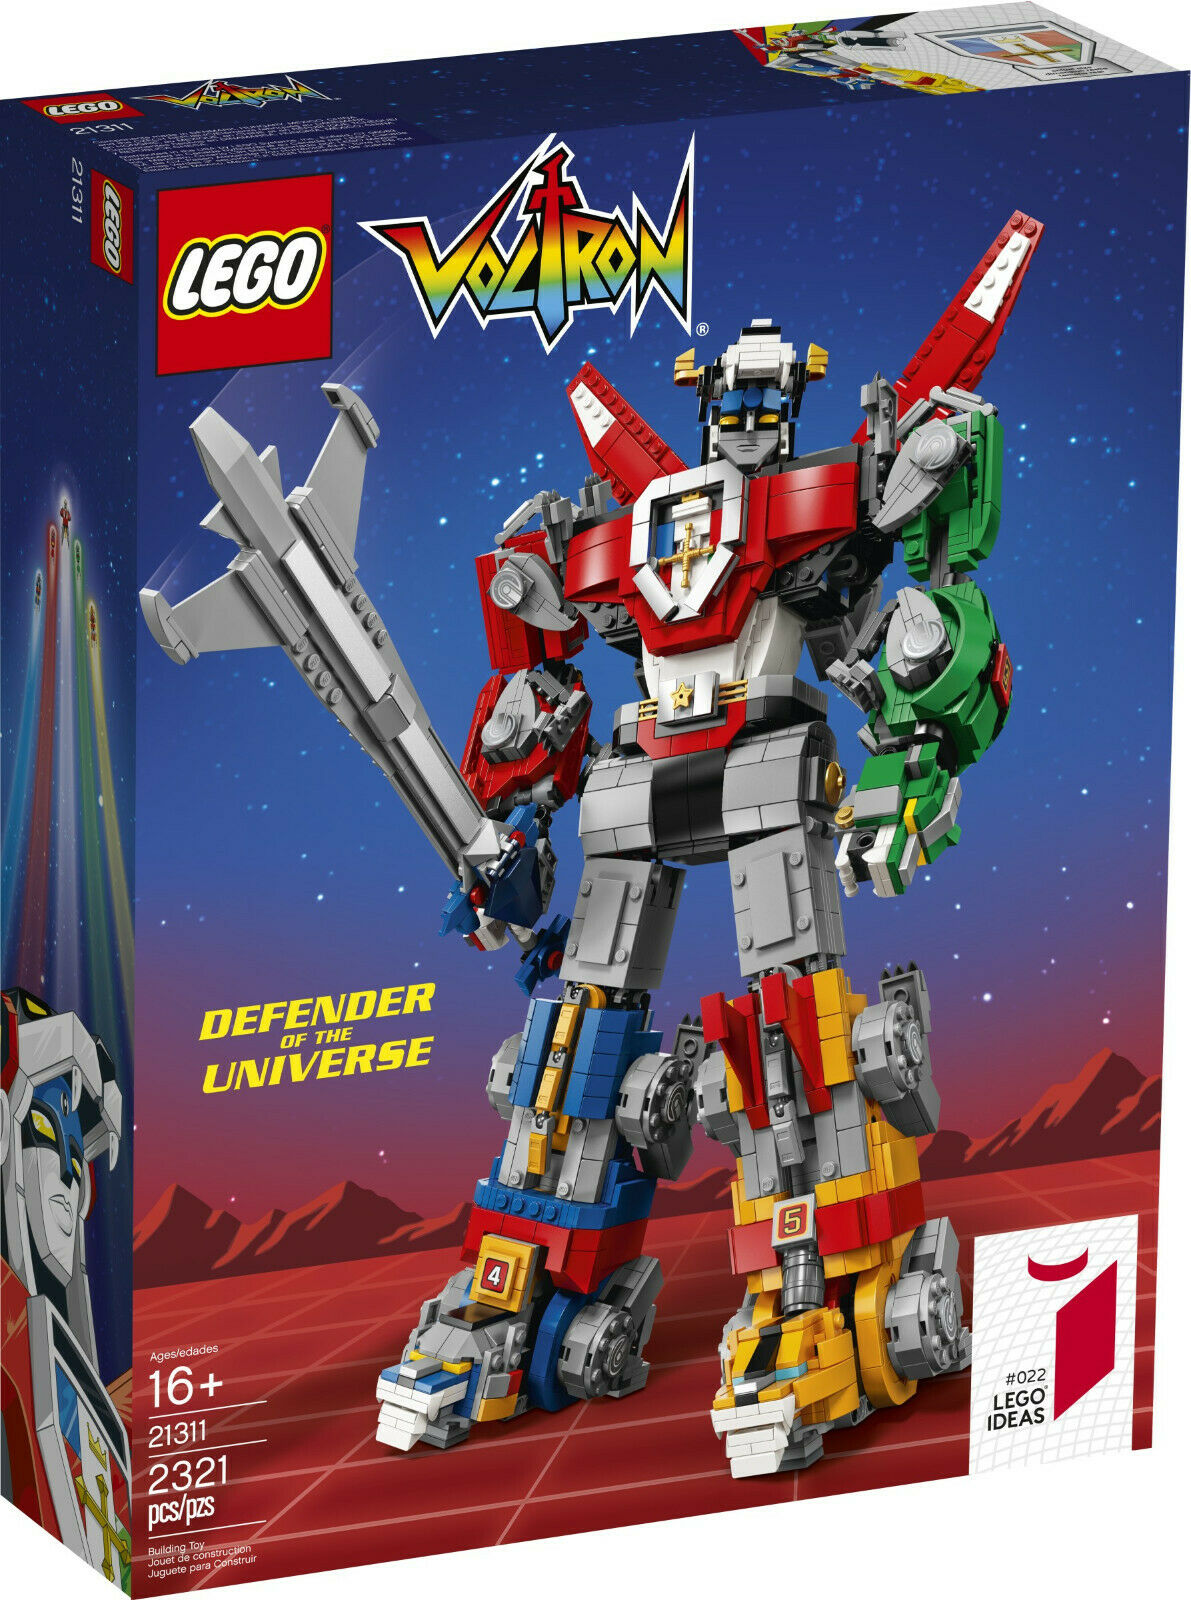 Lego 21311 - Ideas - Voltron (Defender of the Universe)